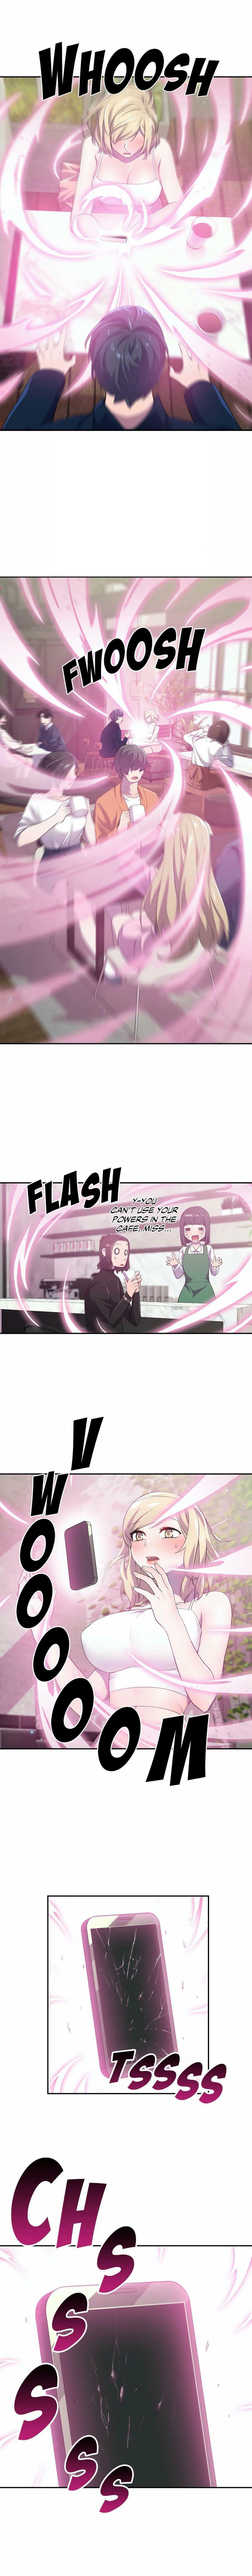 HERO MANAGER Ch. 1-15 45